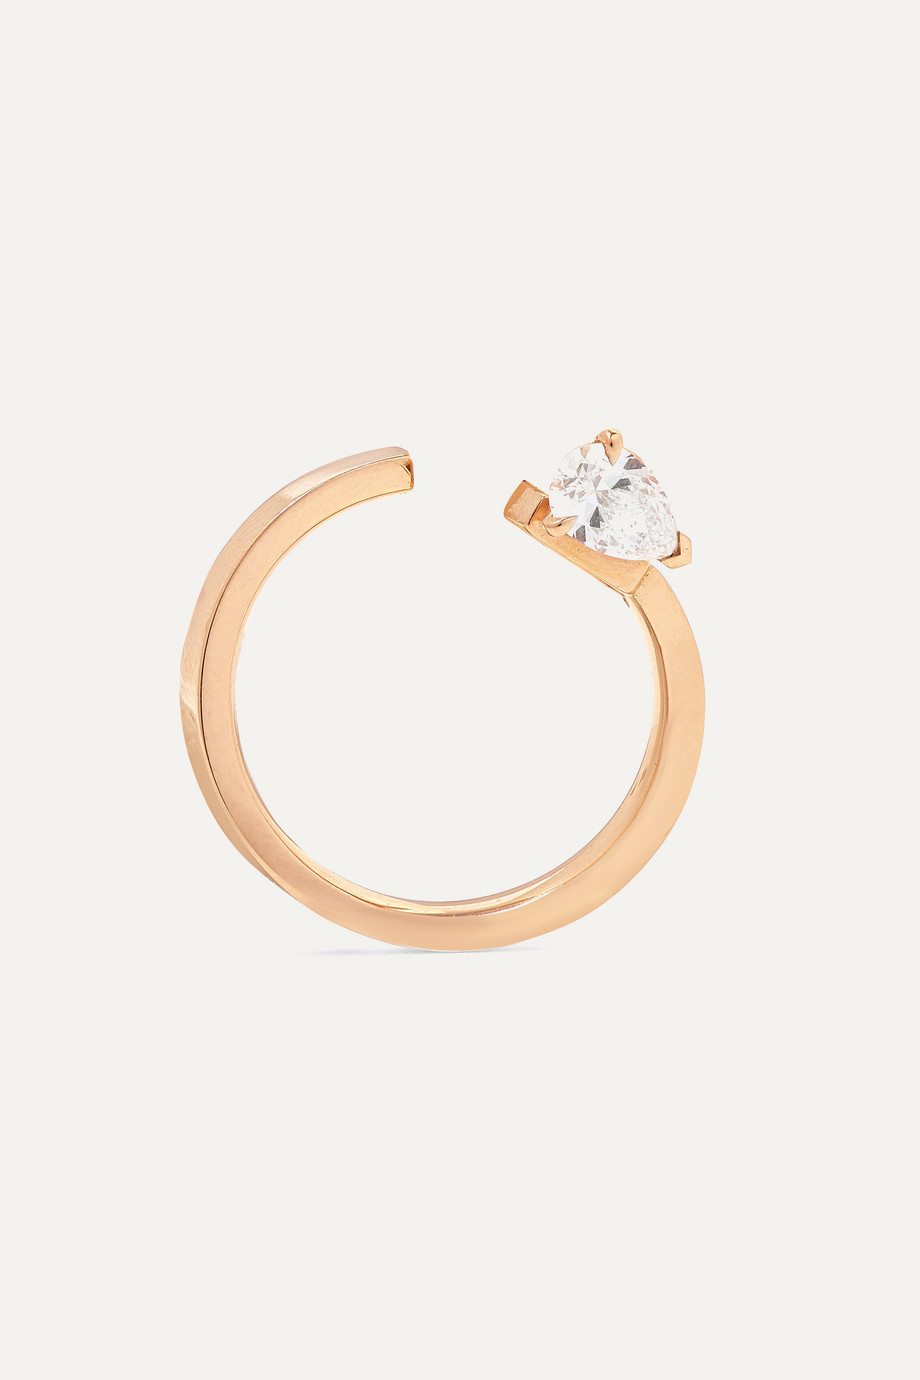 Repossi Serti Sur Vide 18-karat rose gold diamond earring